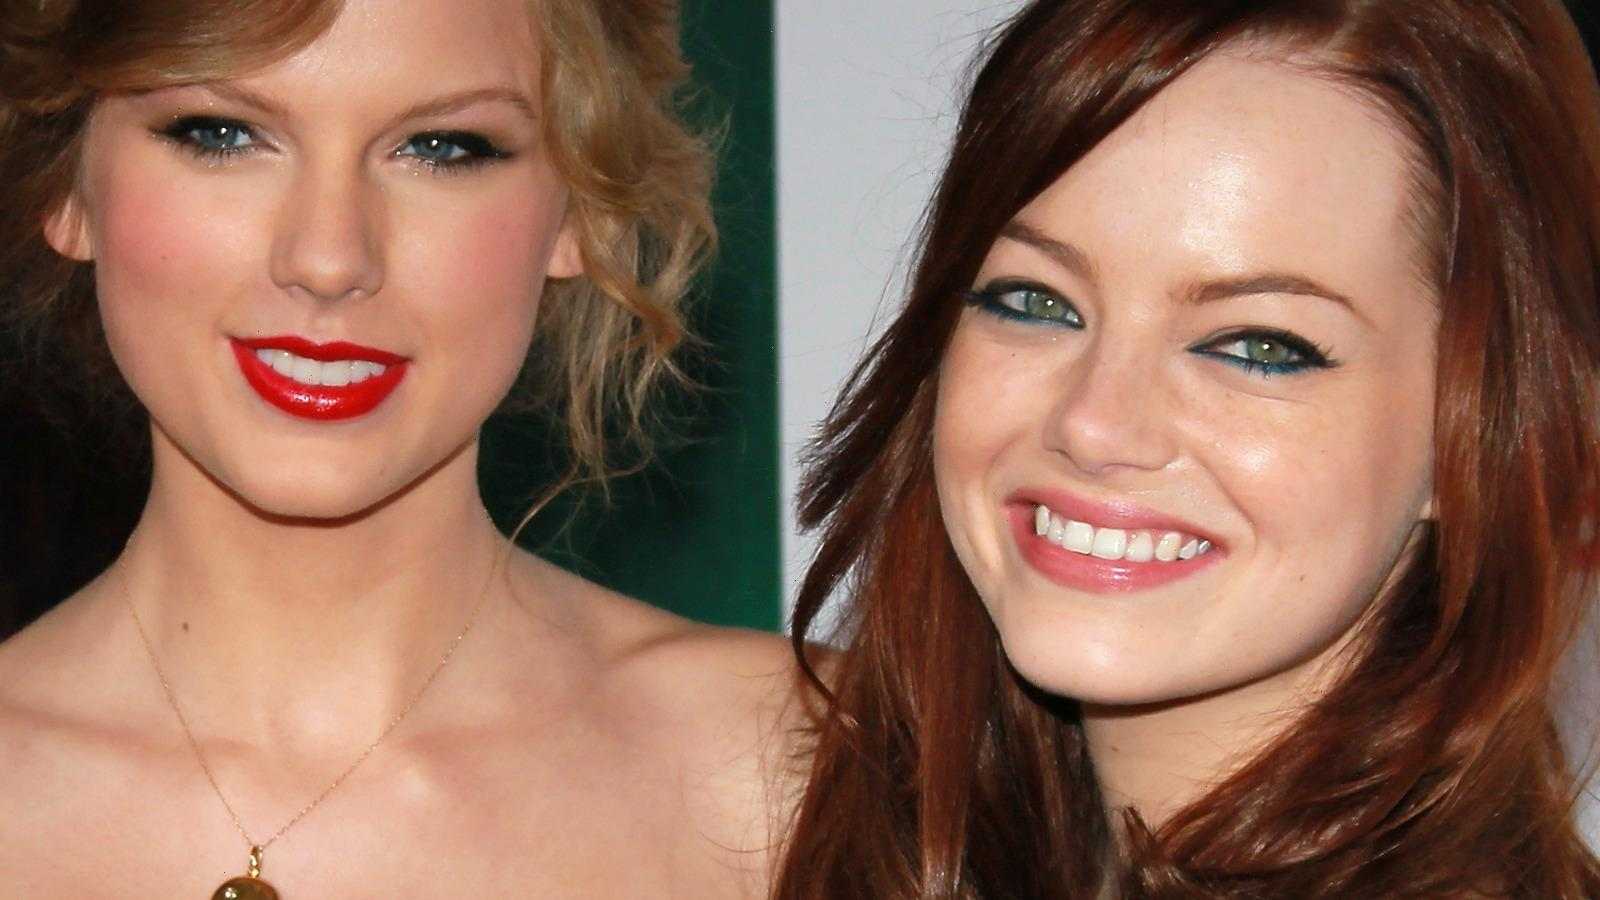 The Truth About Taylor Swift And Emma Stone's Friendship